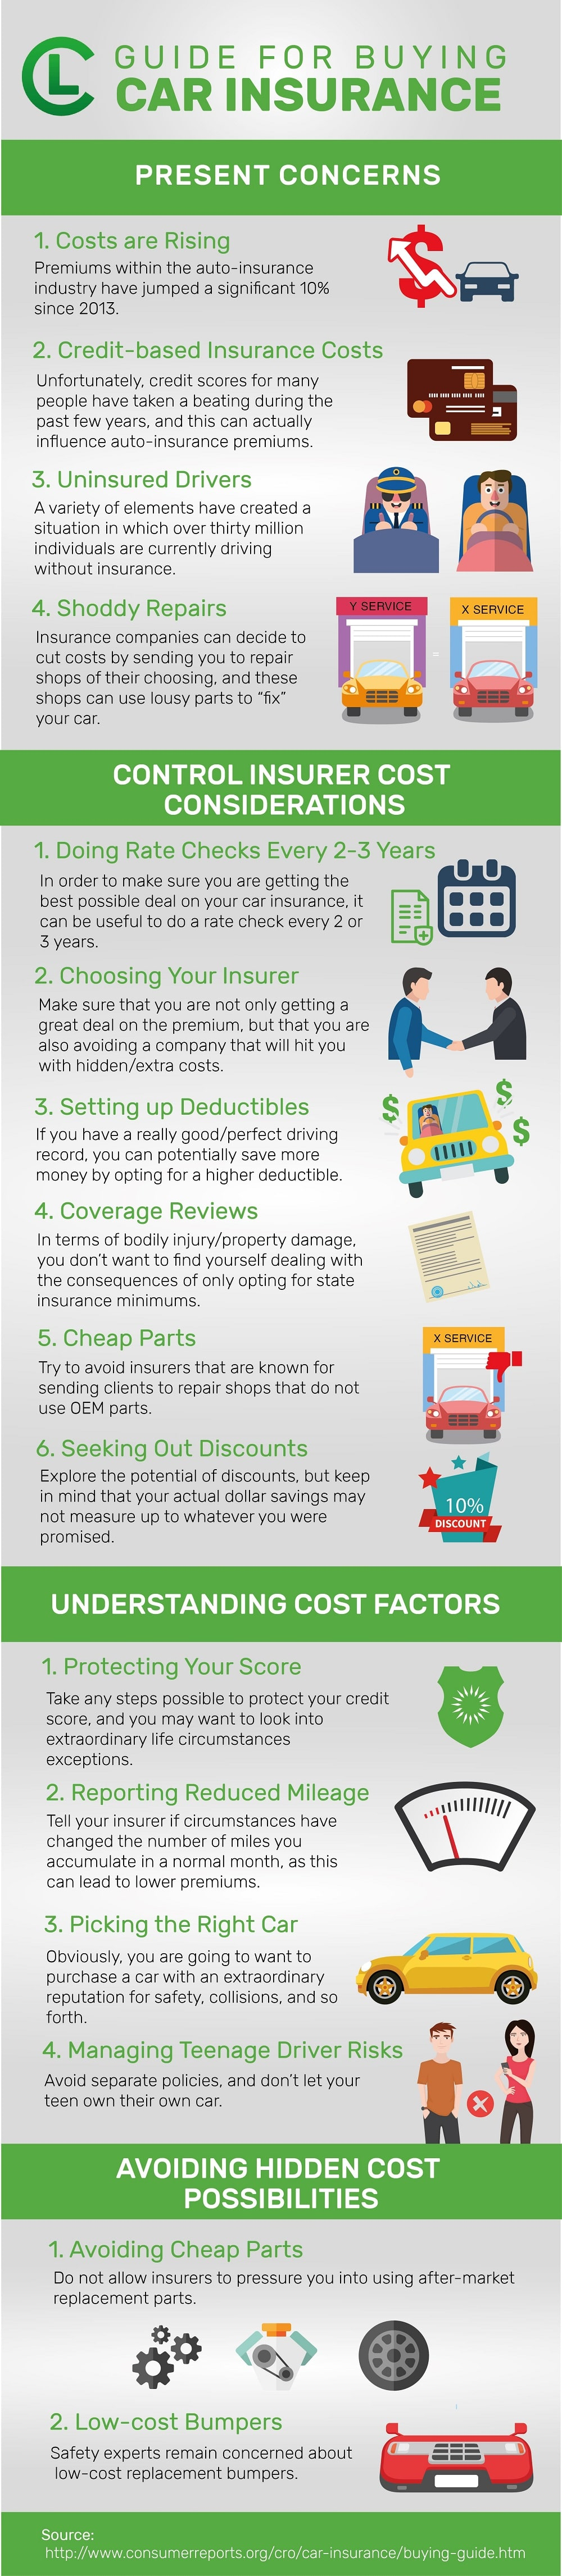 Guide For Buying Car Insurance